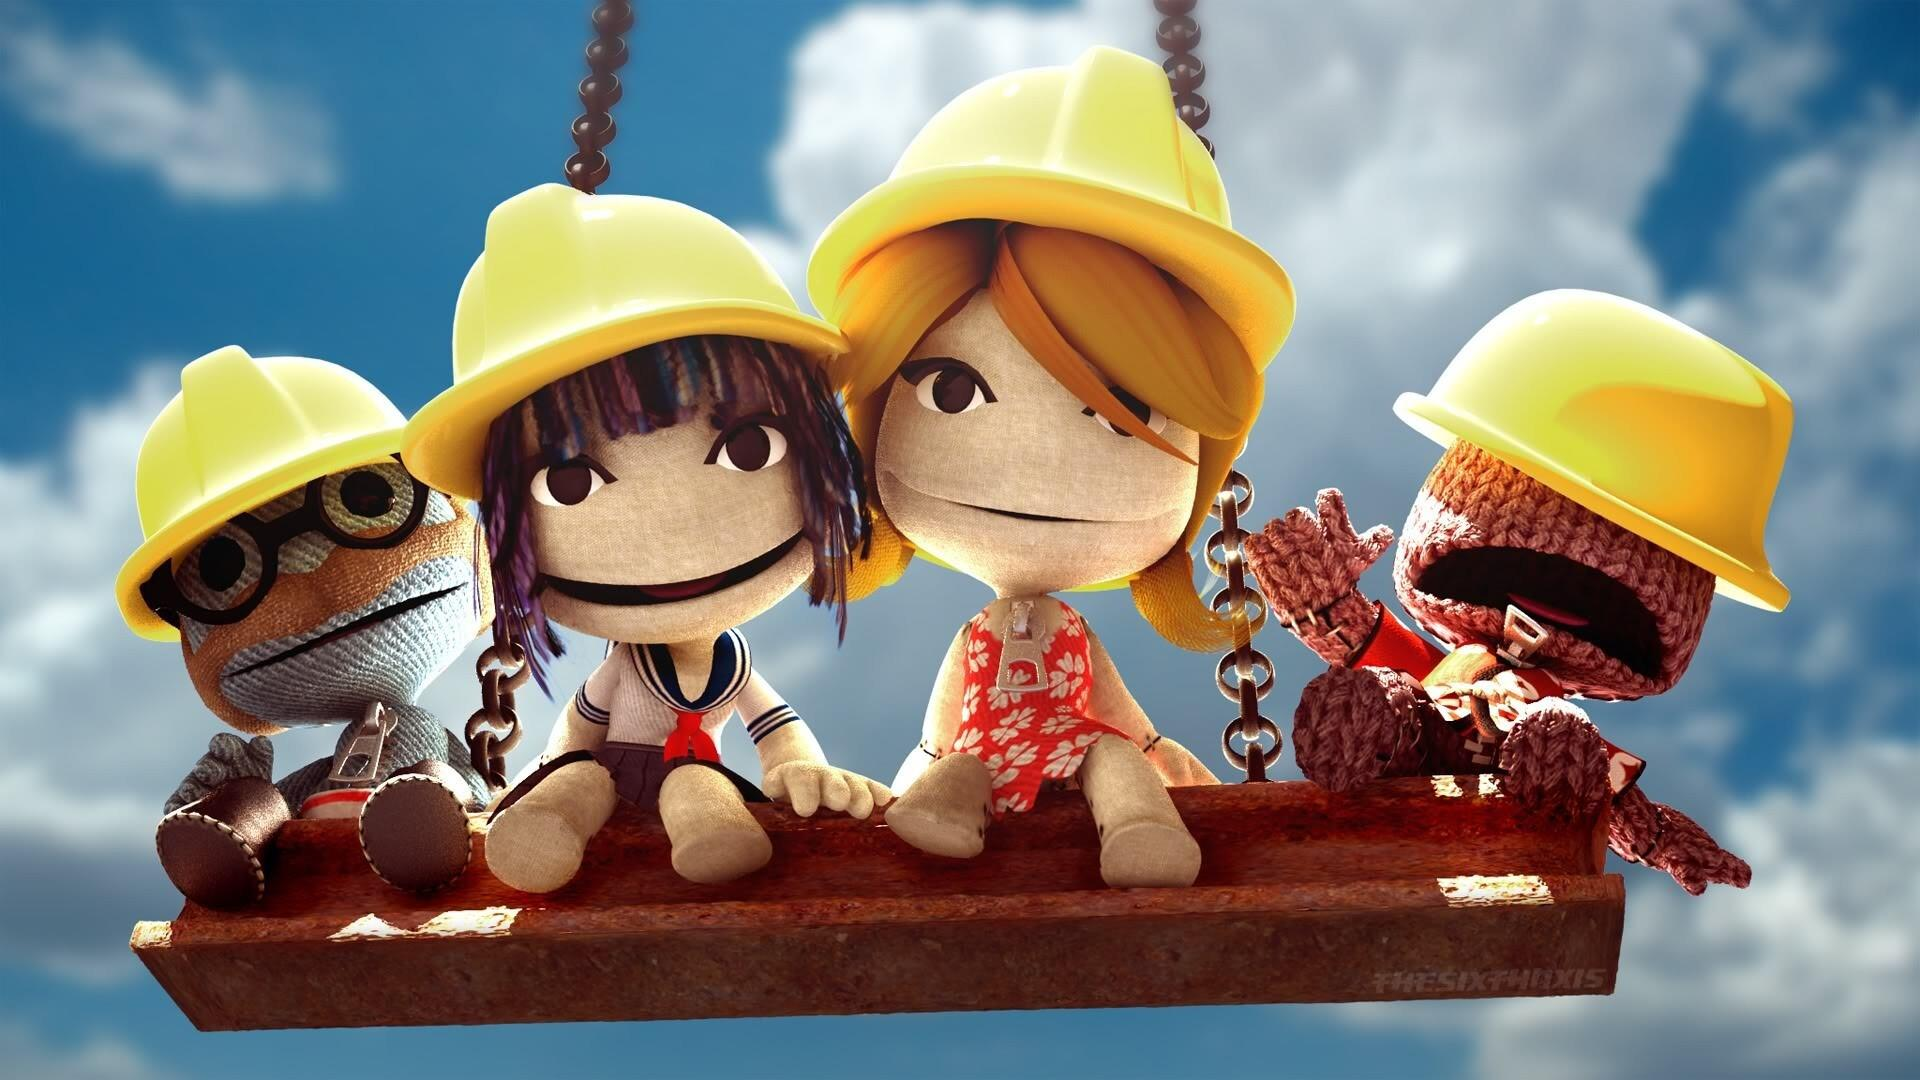 1920x1080 Little Big Planet Cartoon HD Image